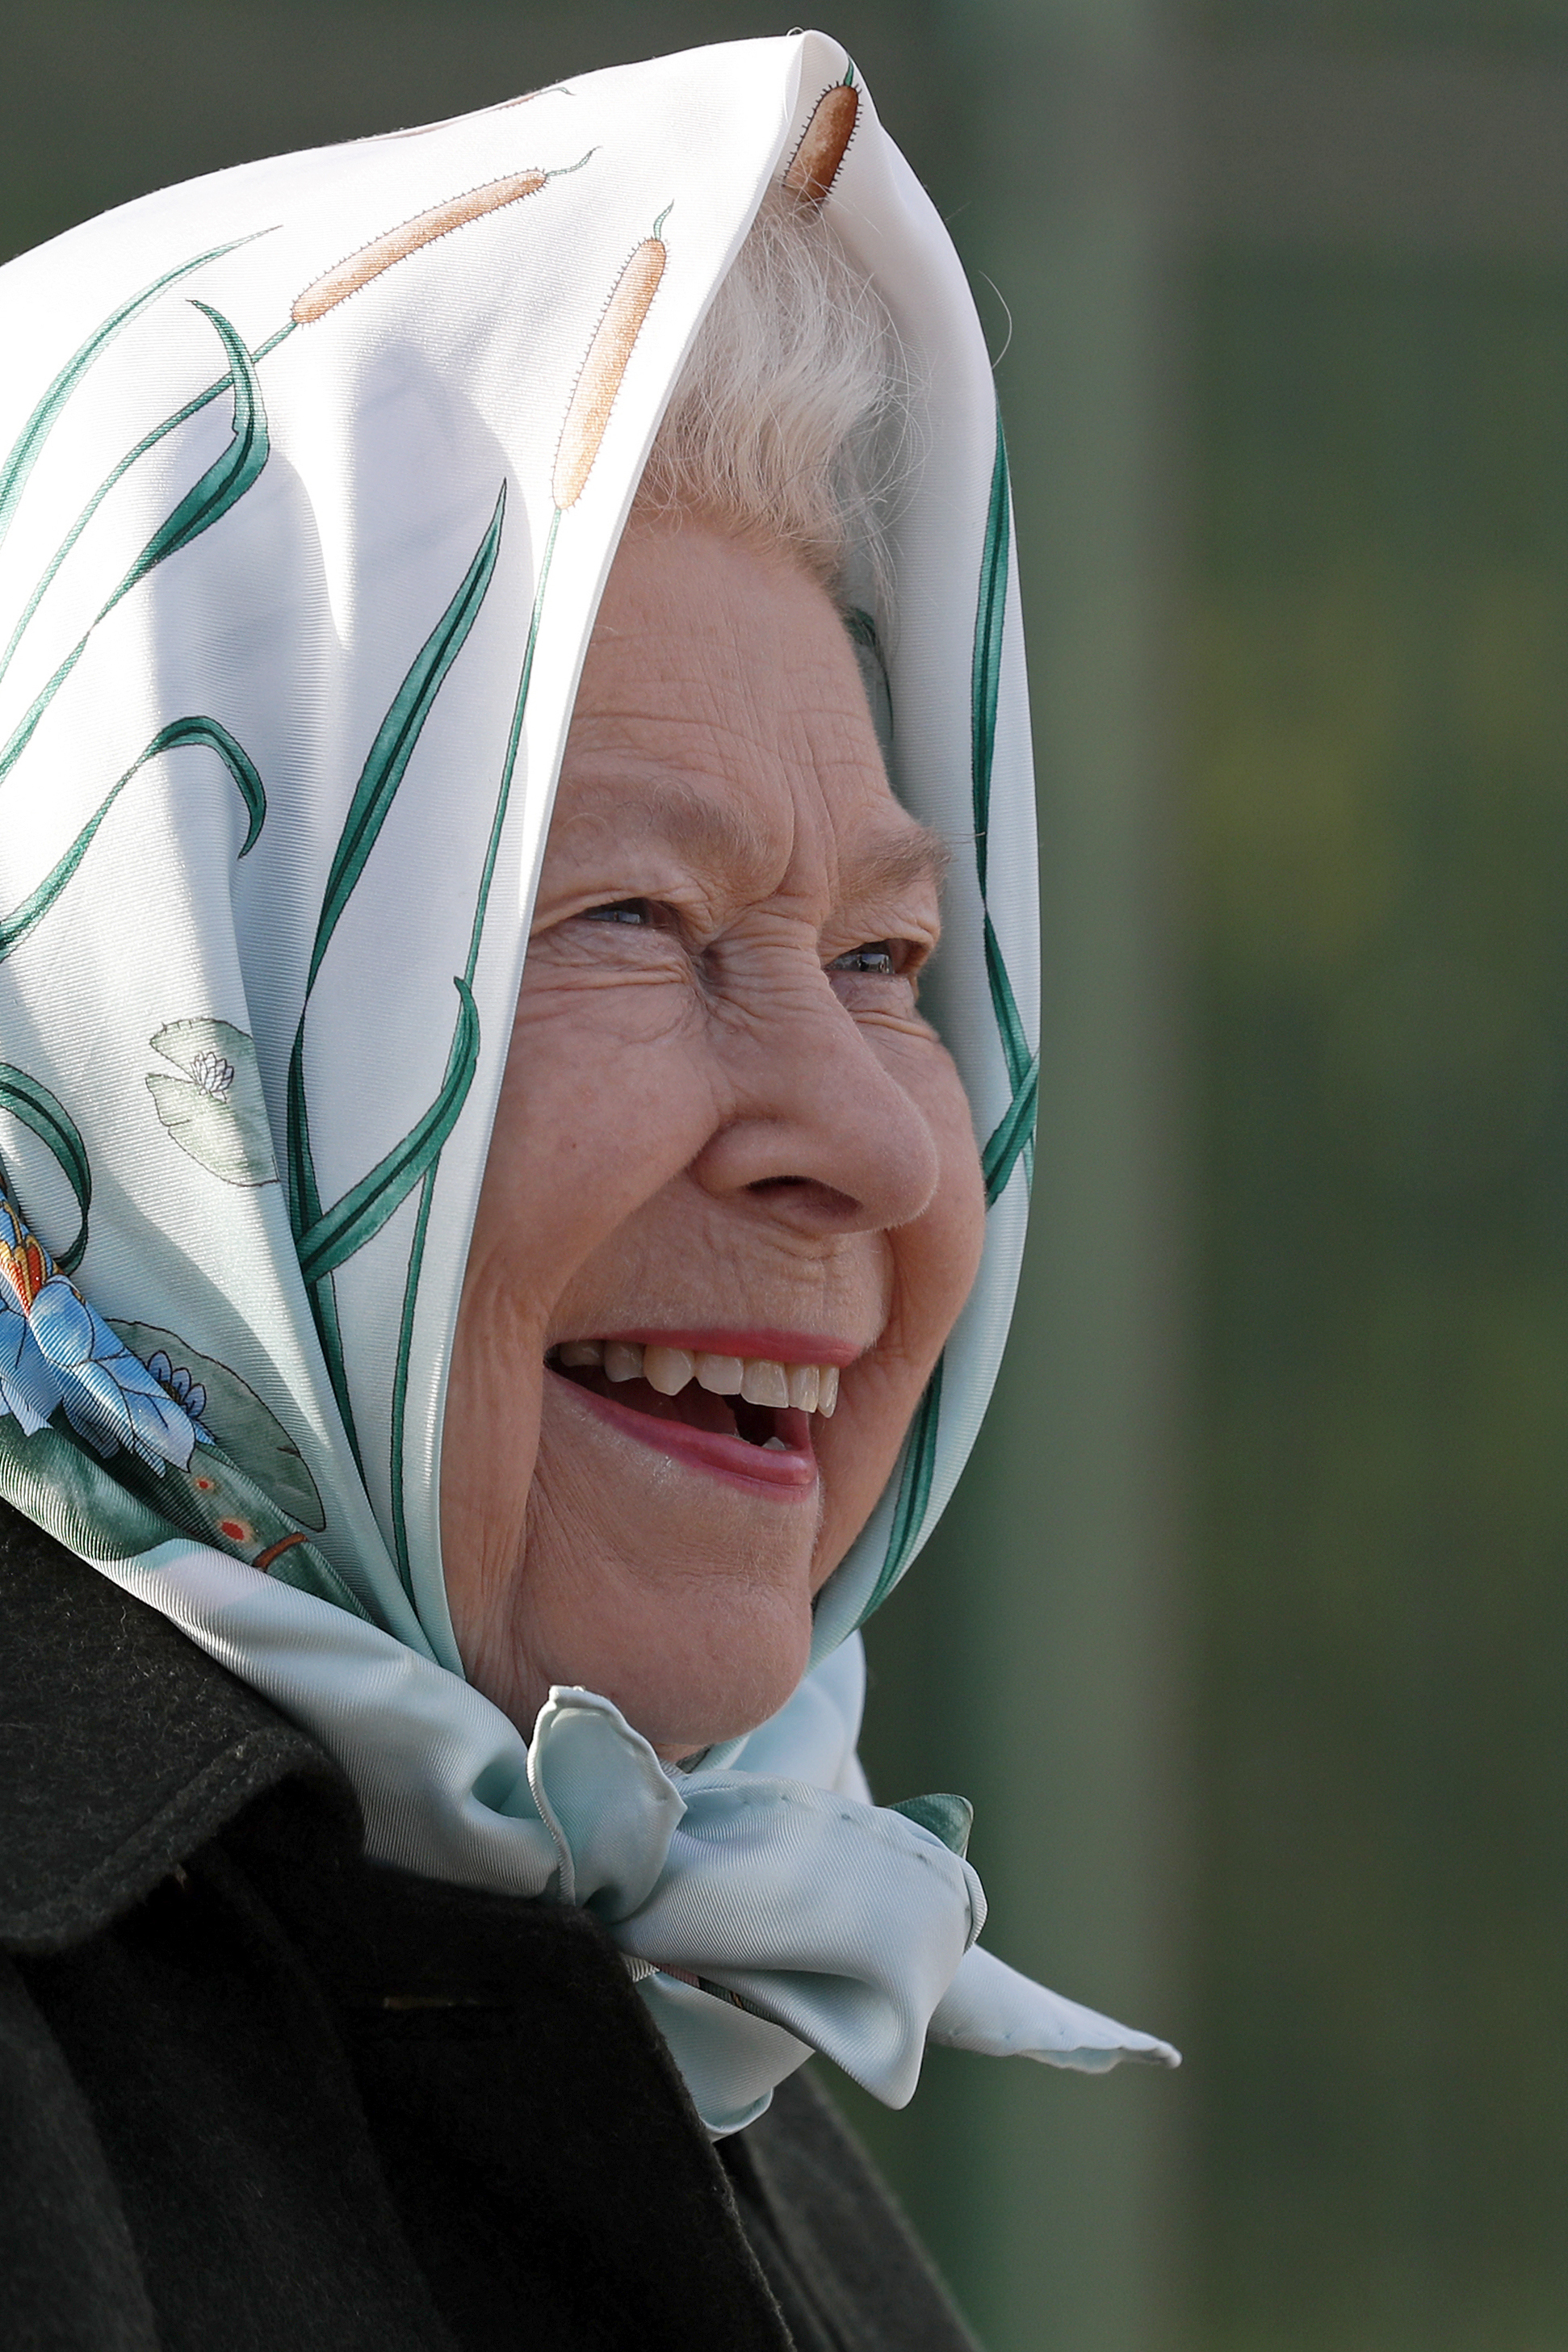 The Queen's visit to Wolferton Pumping Station